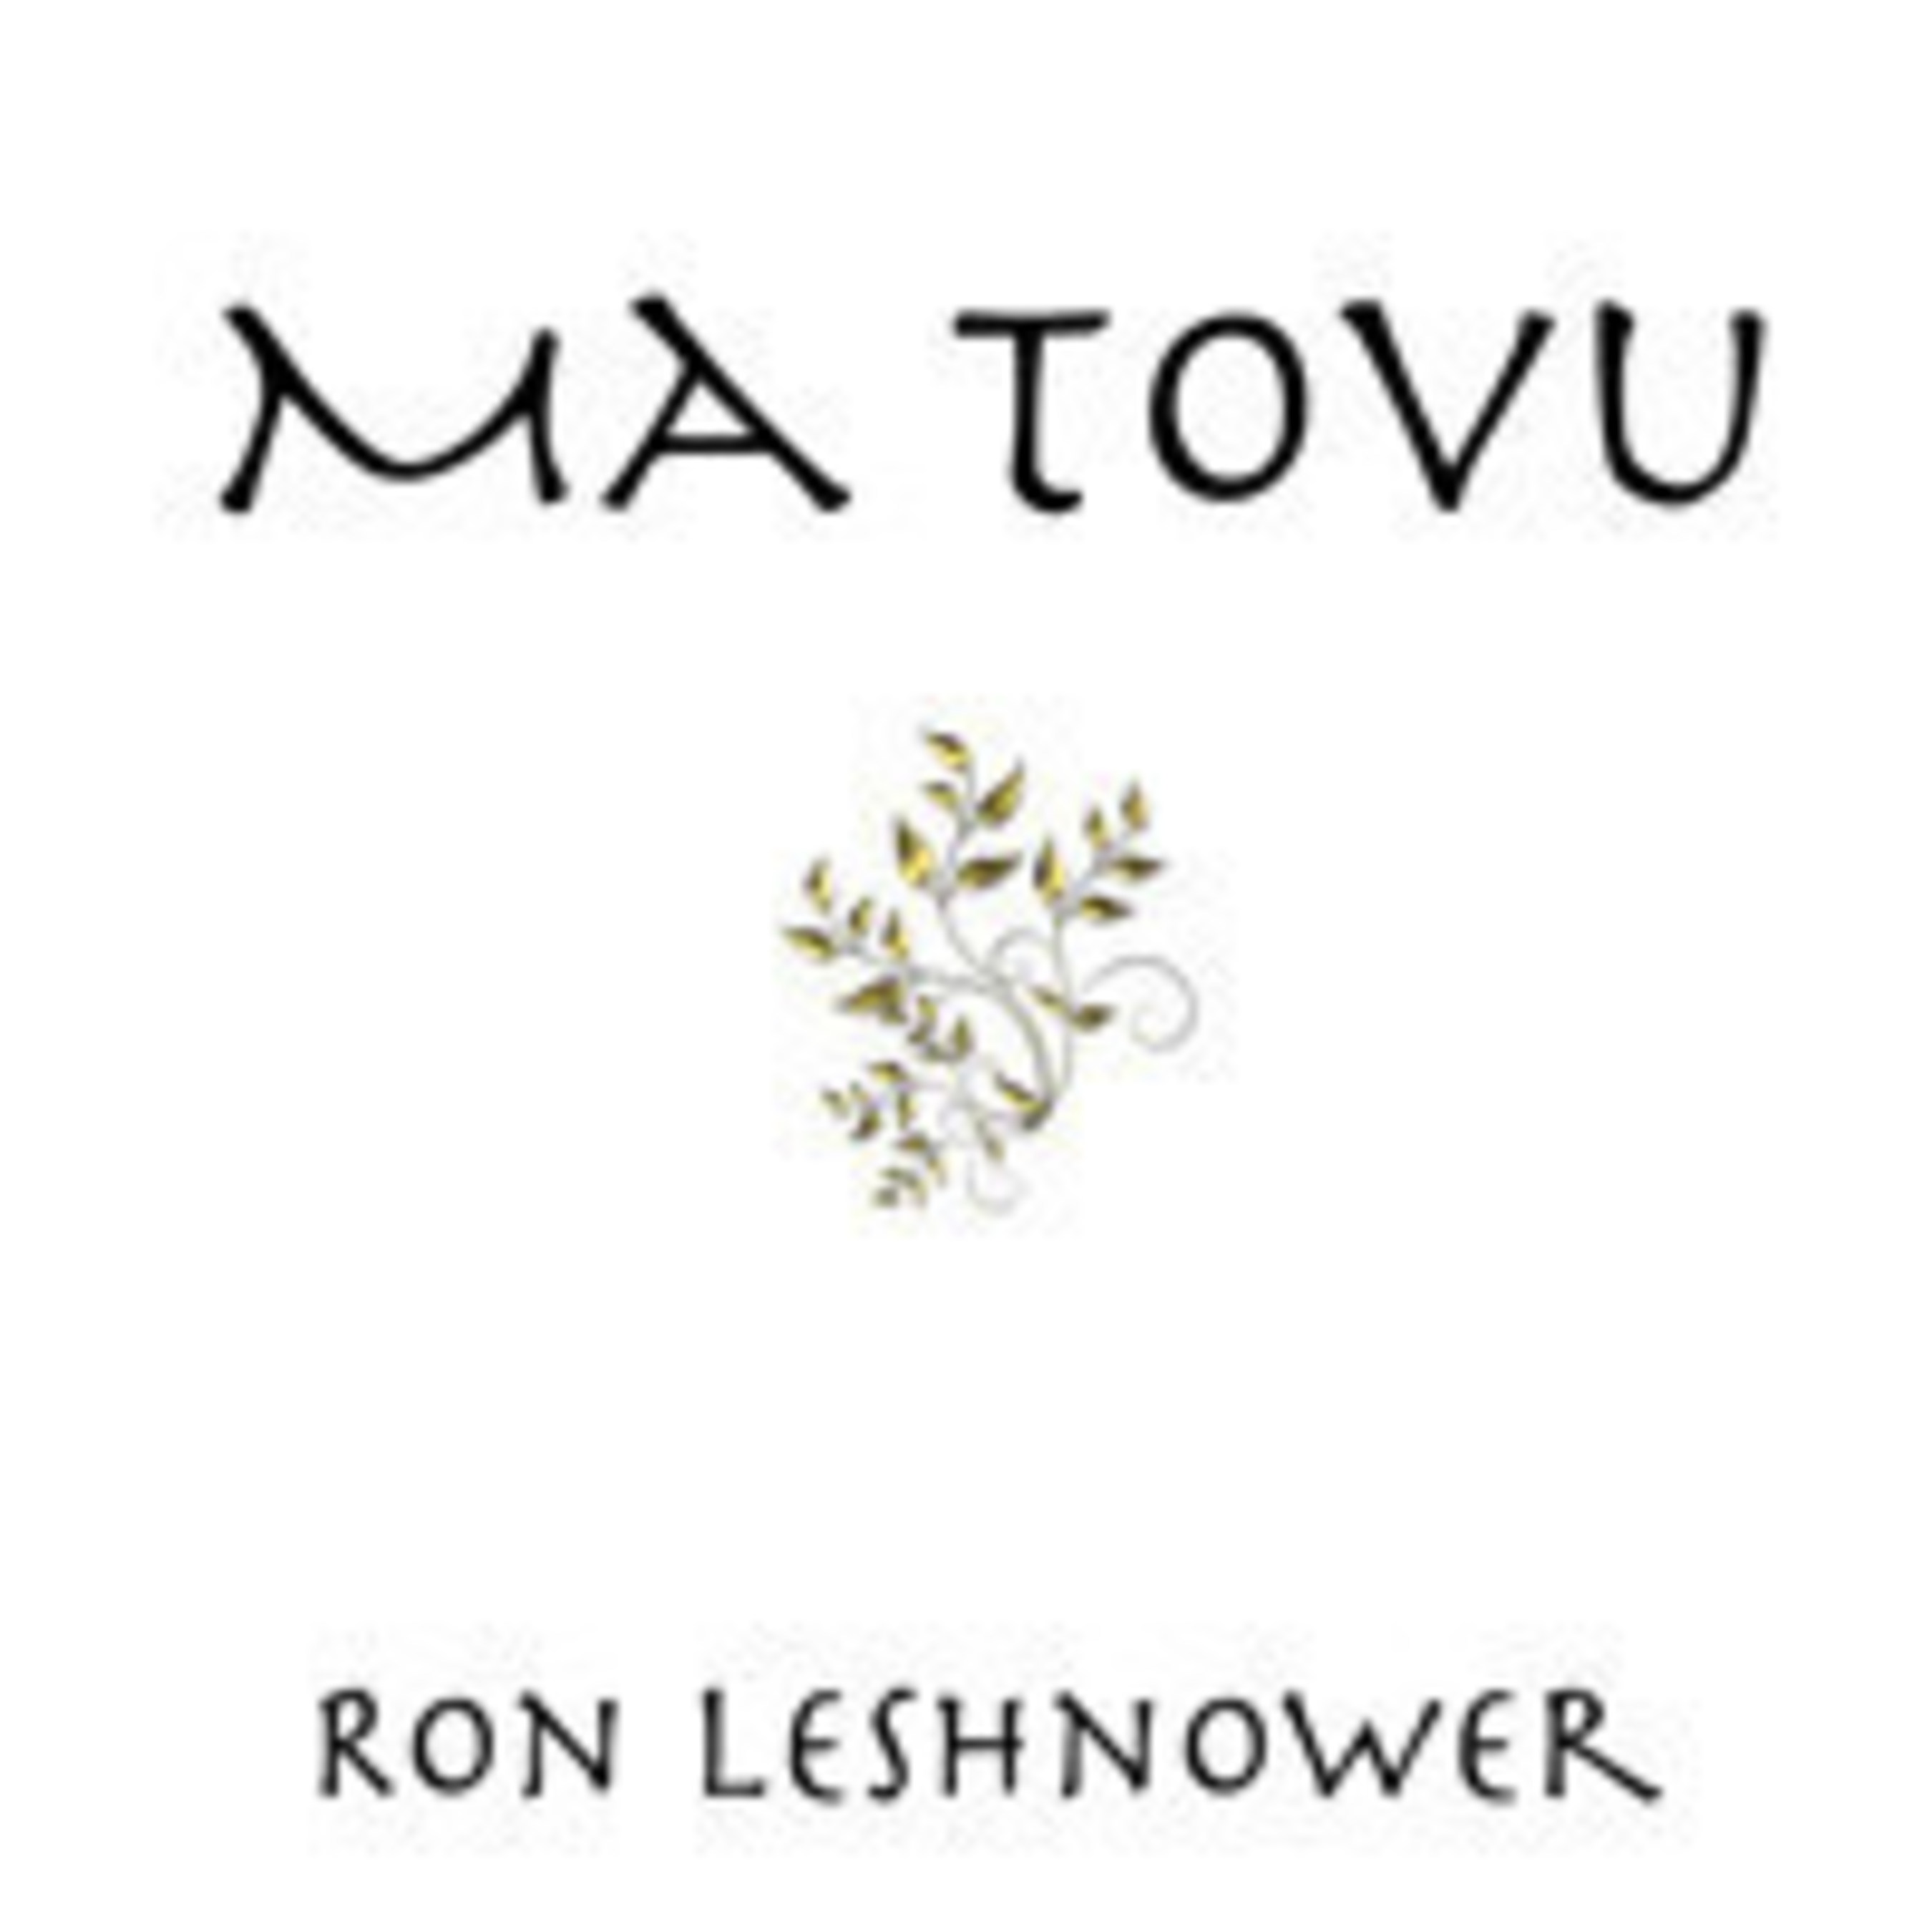 New Choral-Orchestral Interpretation of 'Ma Tovu' Is 'Beautiful and Remarkable Achievement'